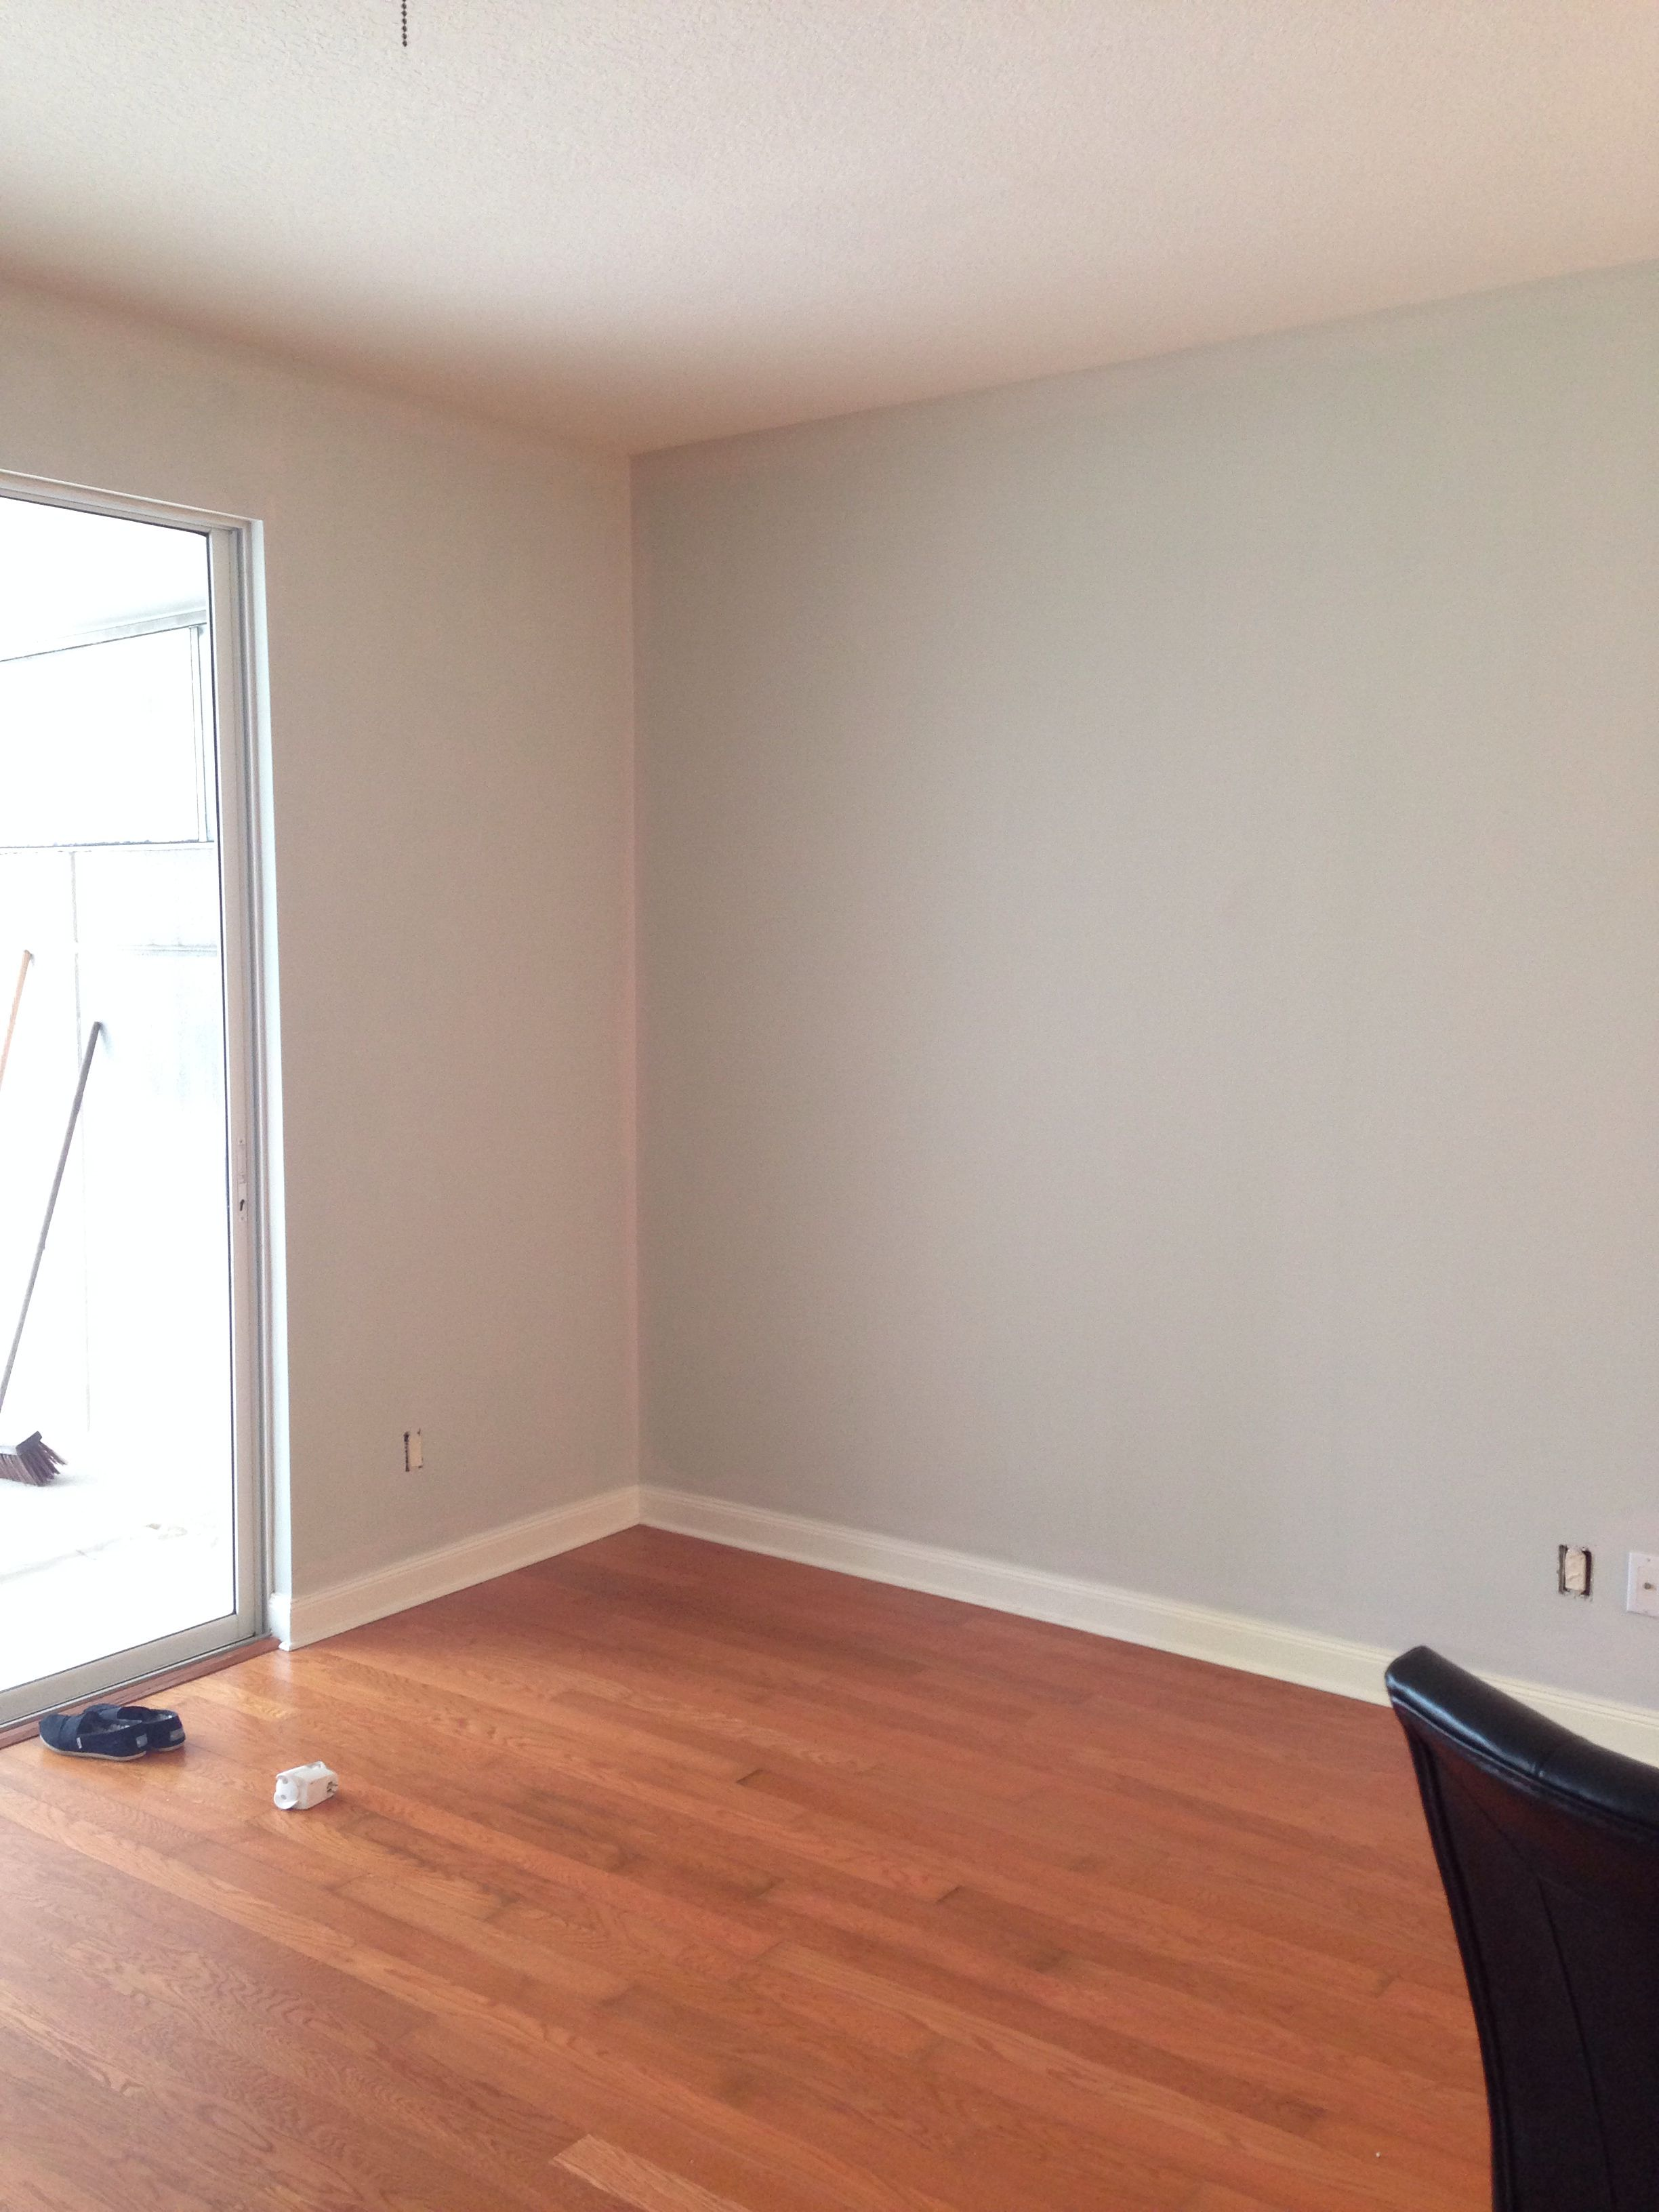 Sherwin Williams Paint Called Simple White Kitchen